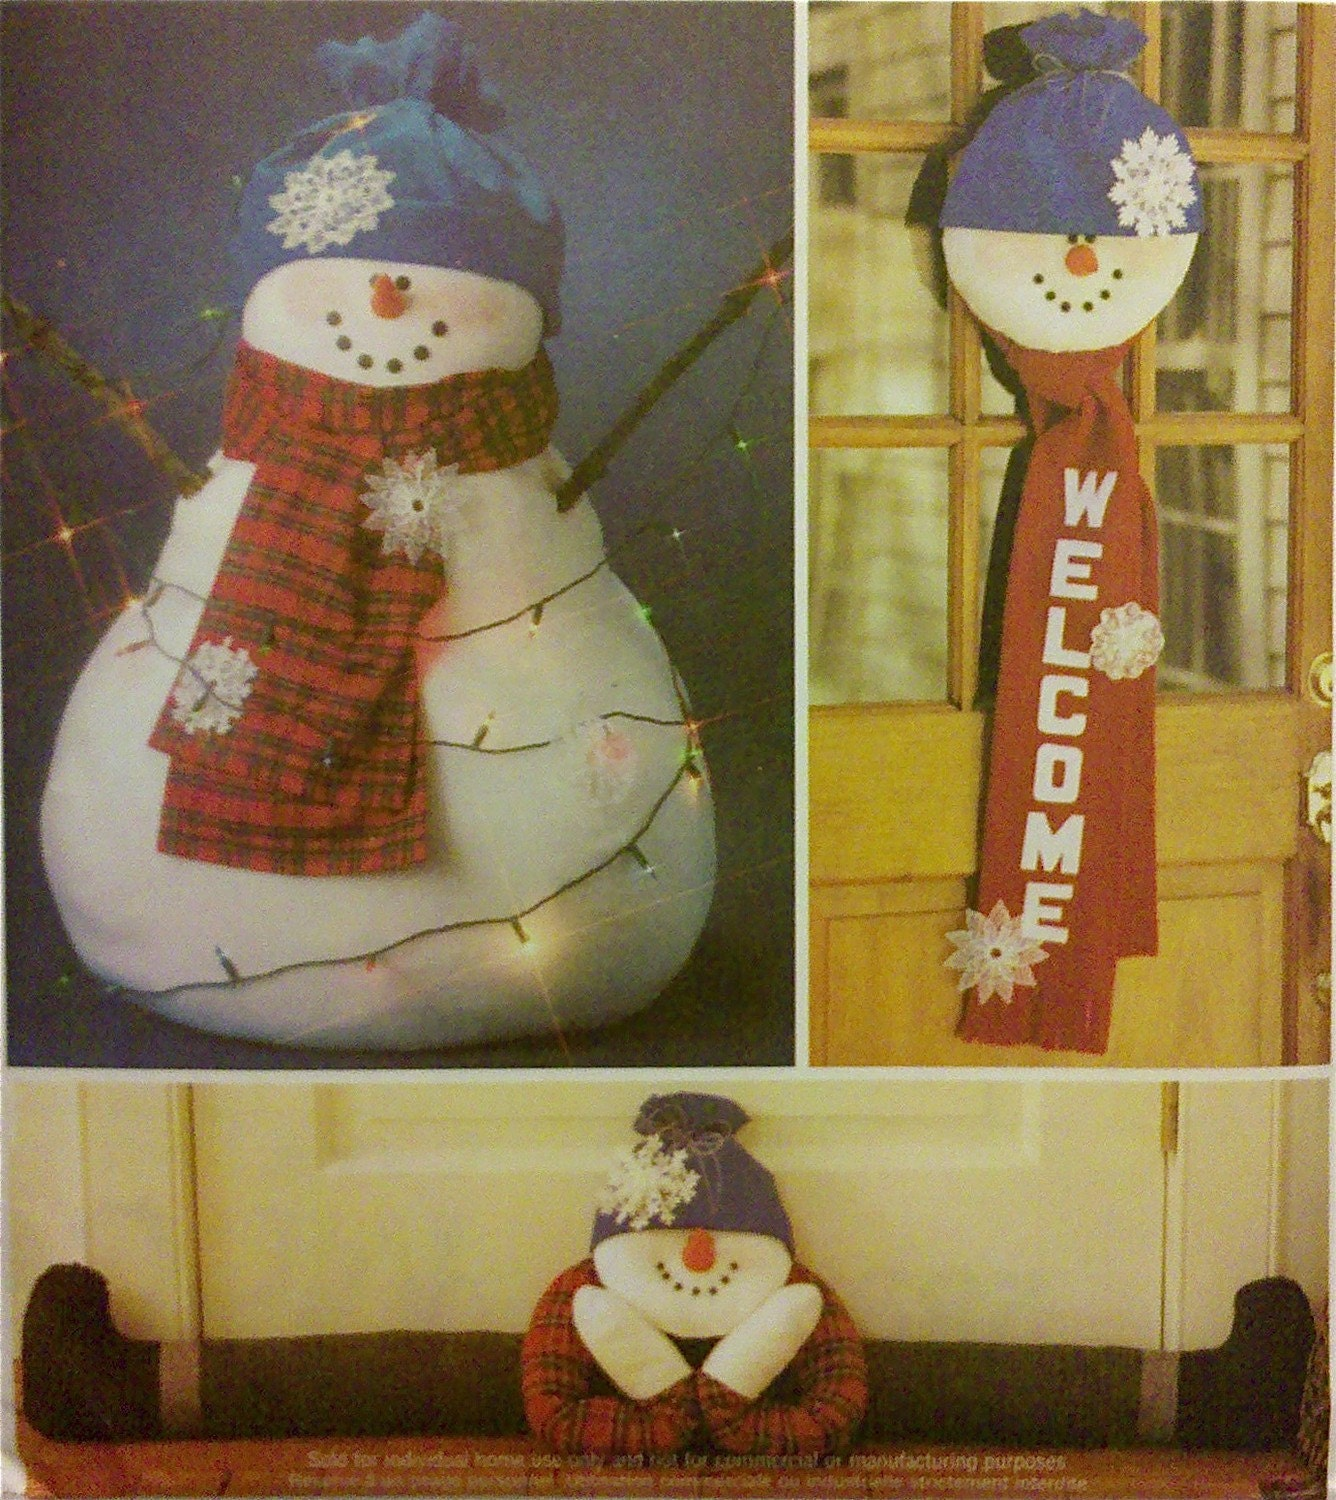 Snowman Sewing Pattern Door Hanger Draft Stopper Oversized